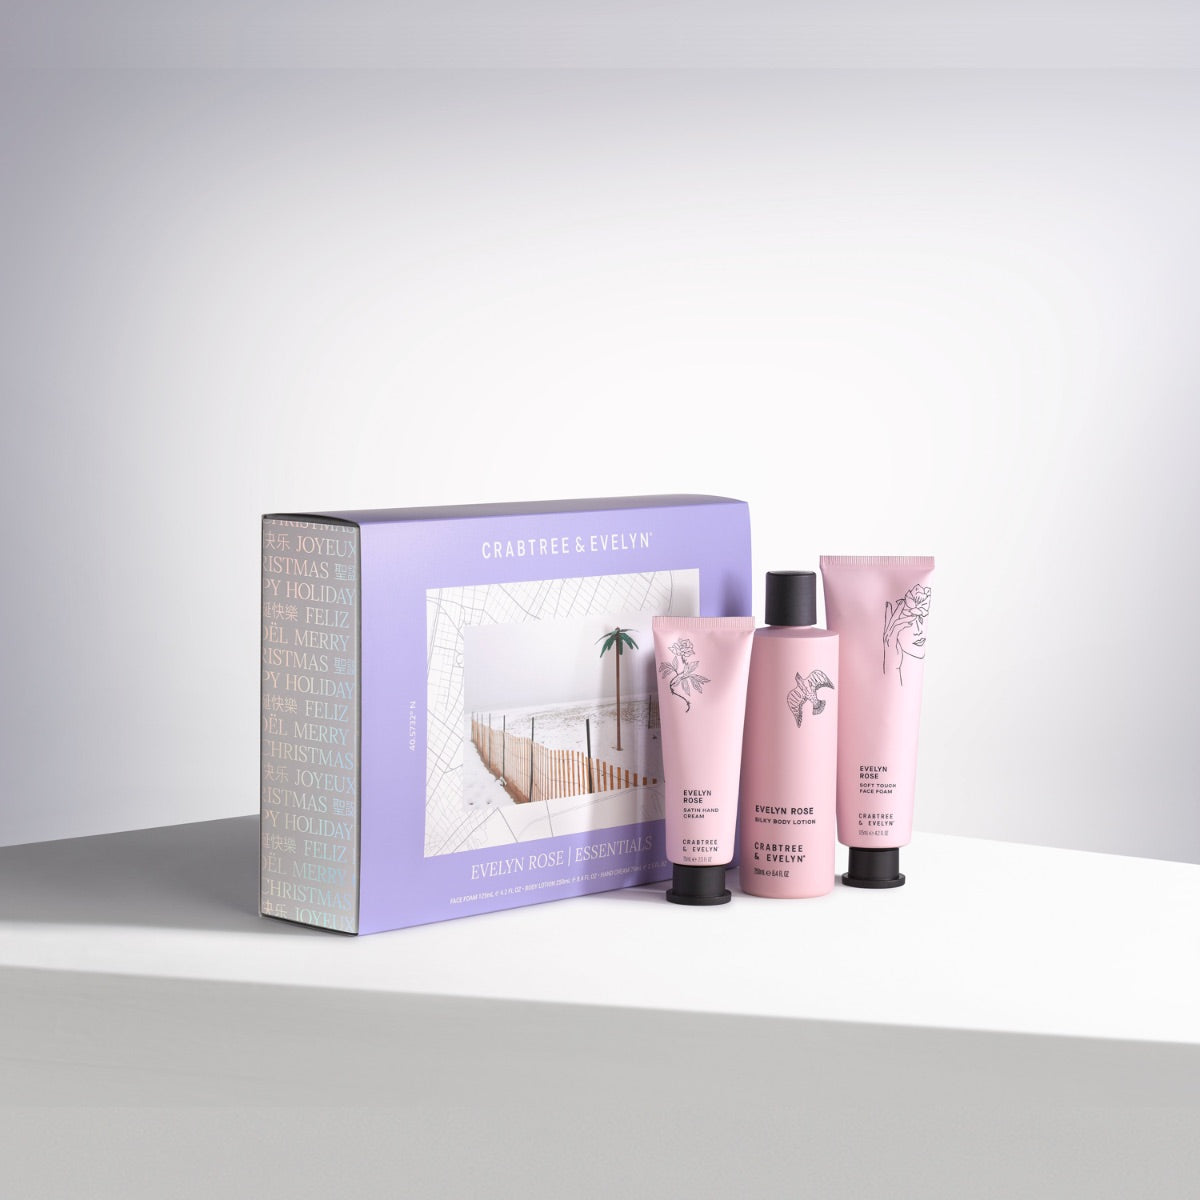 Evelyn Rose Essentials Gift Set